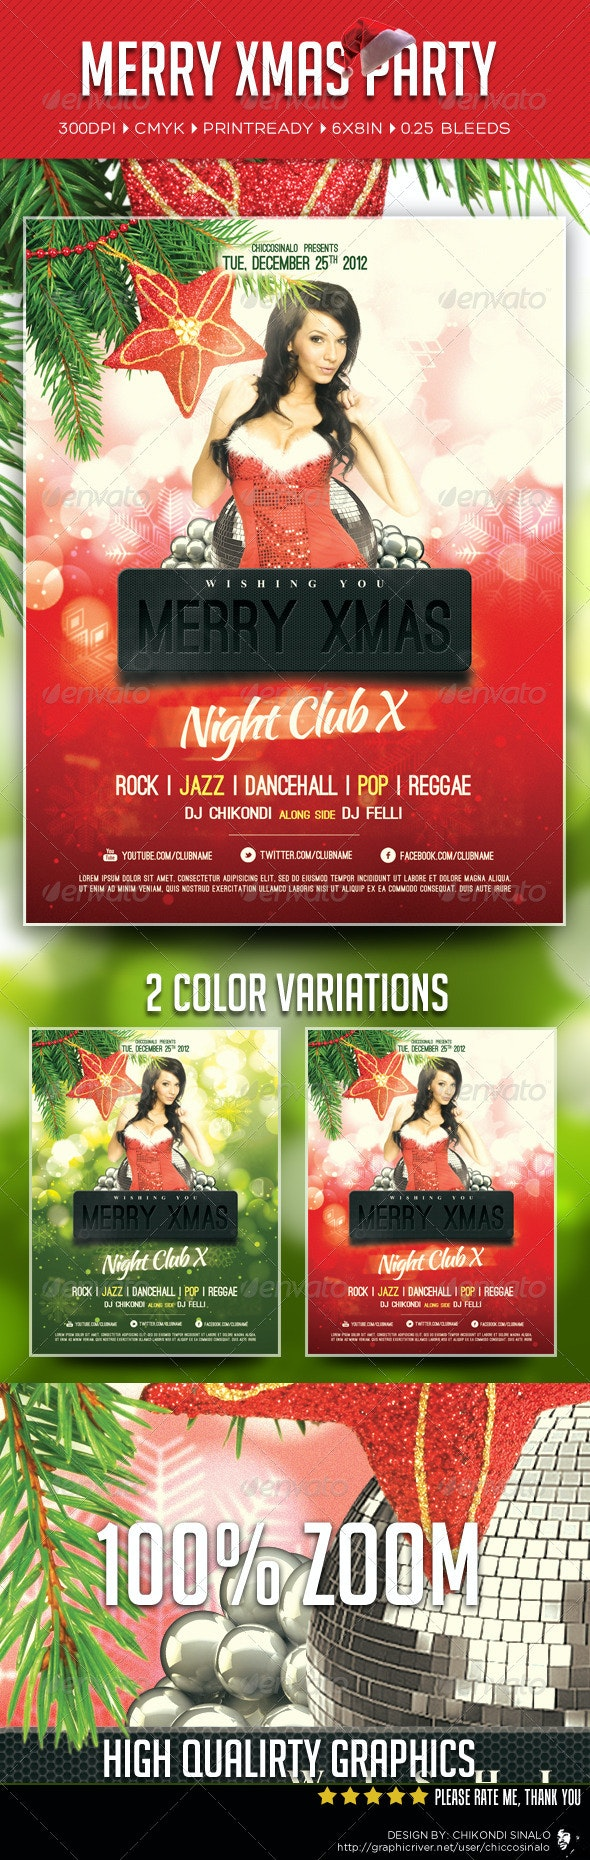 Merry Xmas Party Flyer Template - Holidays Events